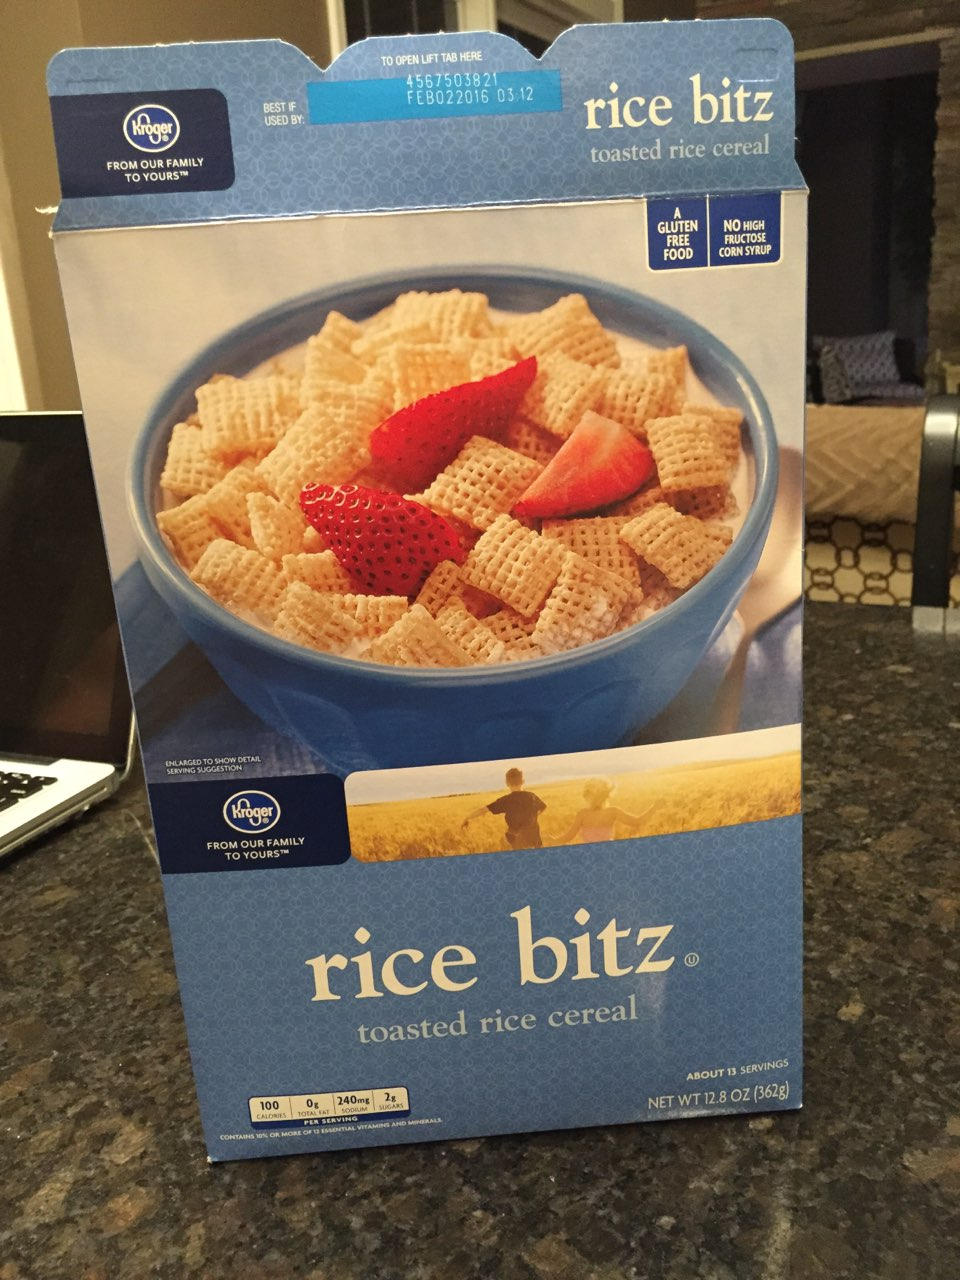 Calories in rice cereal